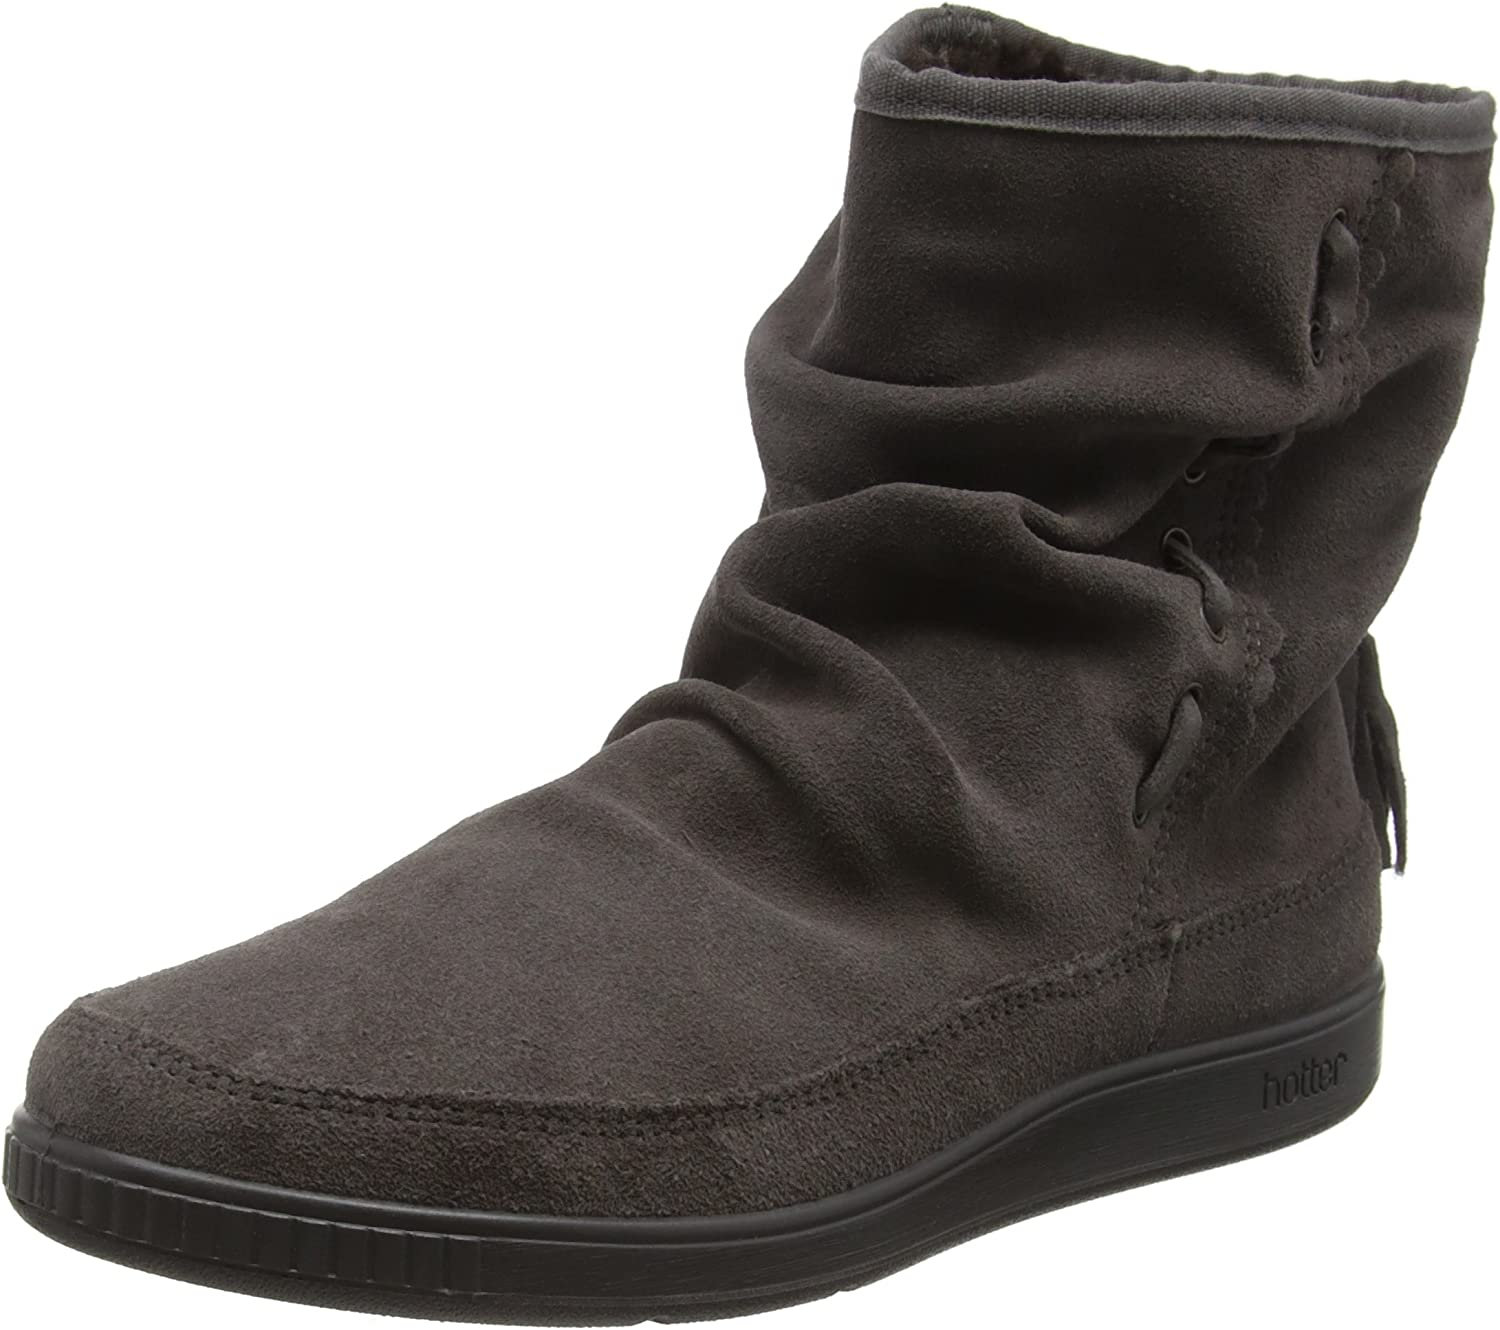 Hotter Pixie Womens Soft Suede Ankle